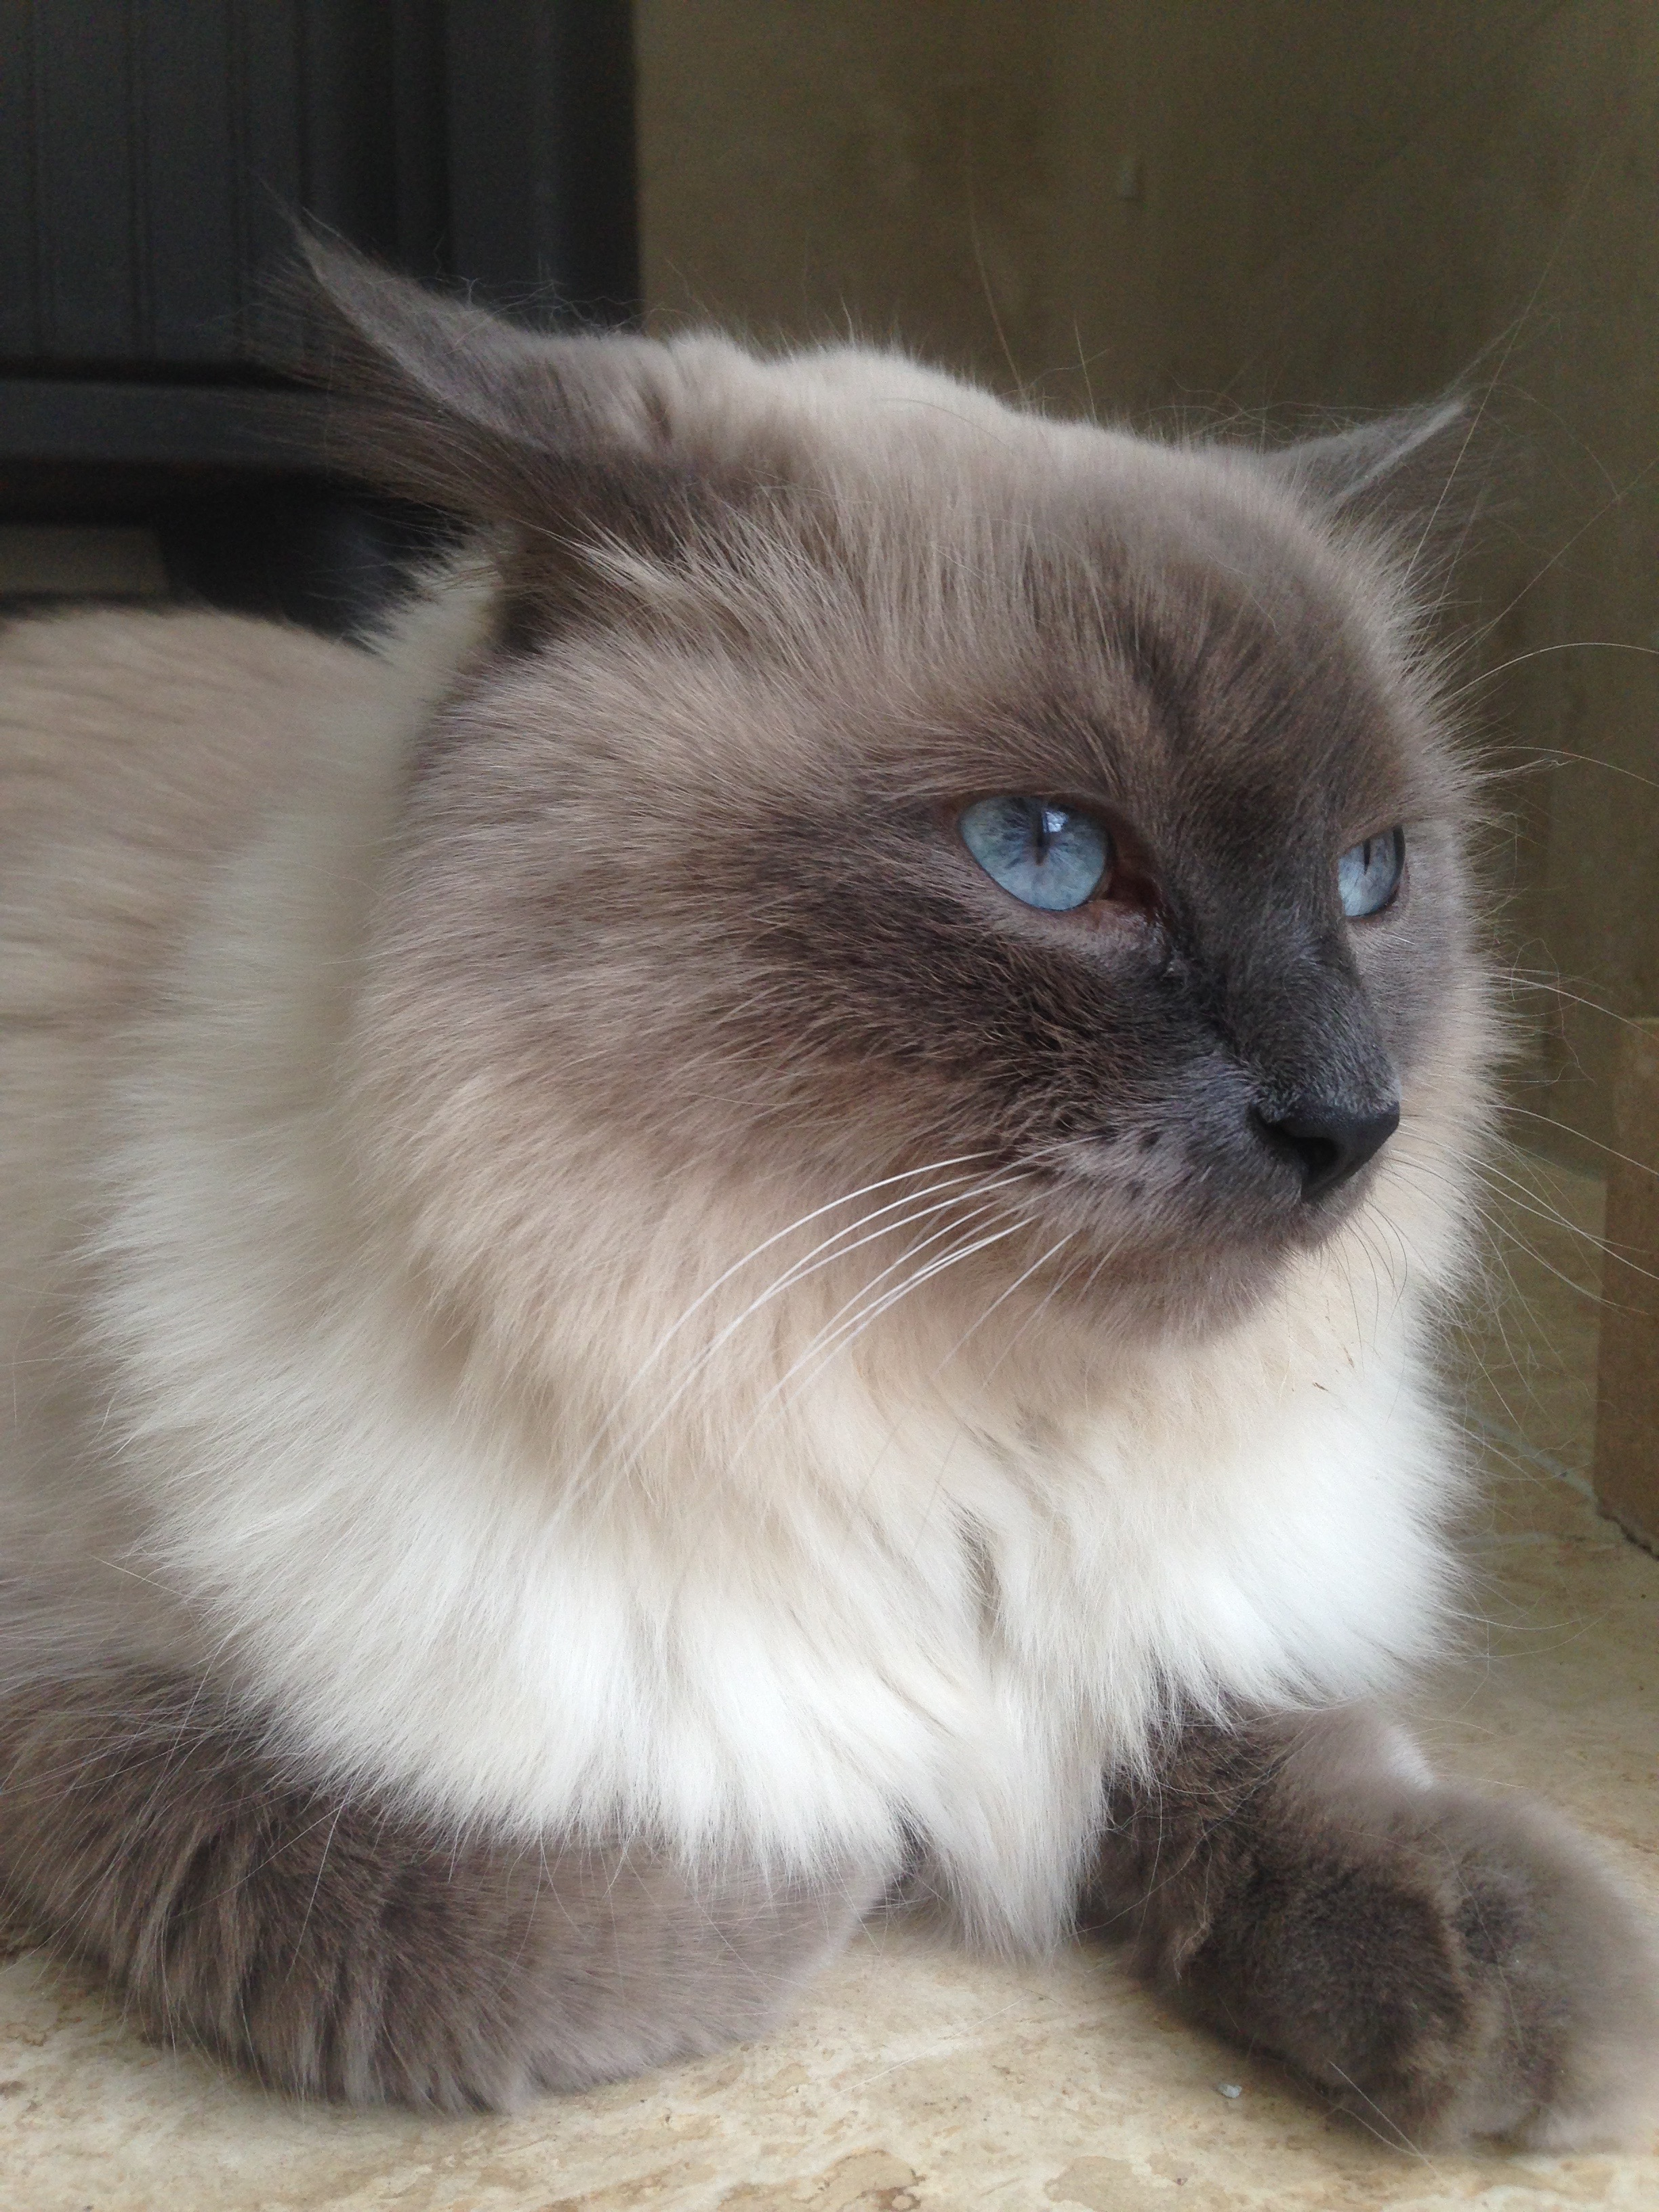 File:Himalayan Male Cat 5 years Old Lilac Point.jpg - Wikimedia Commons